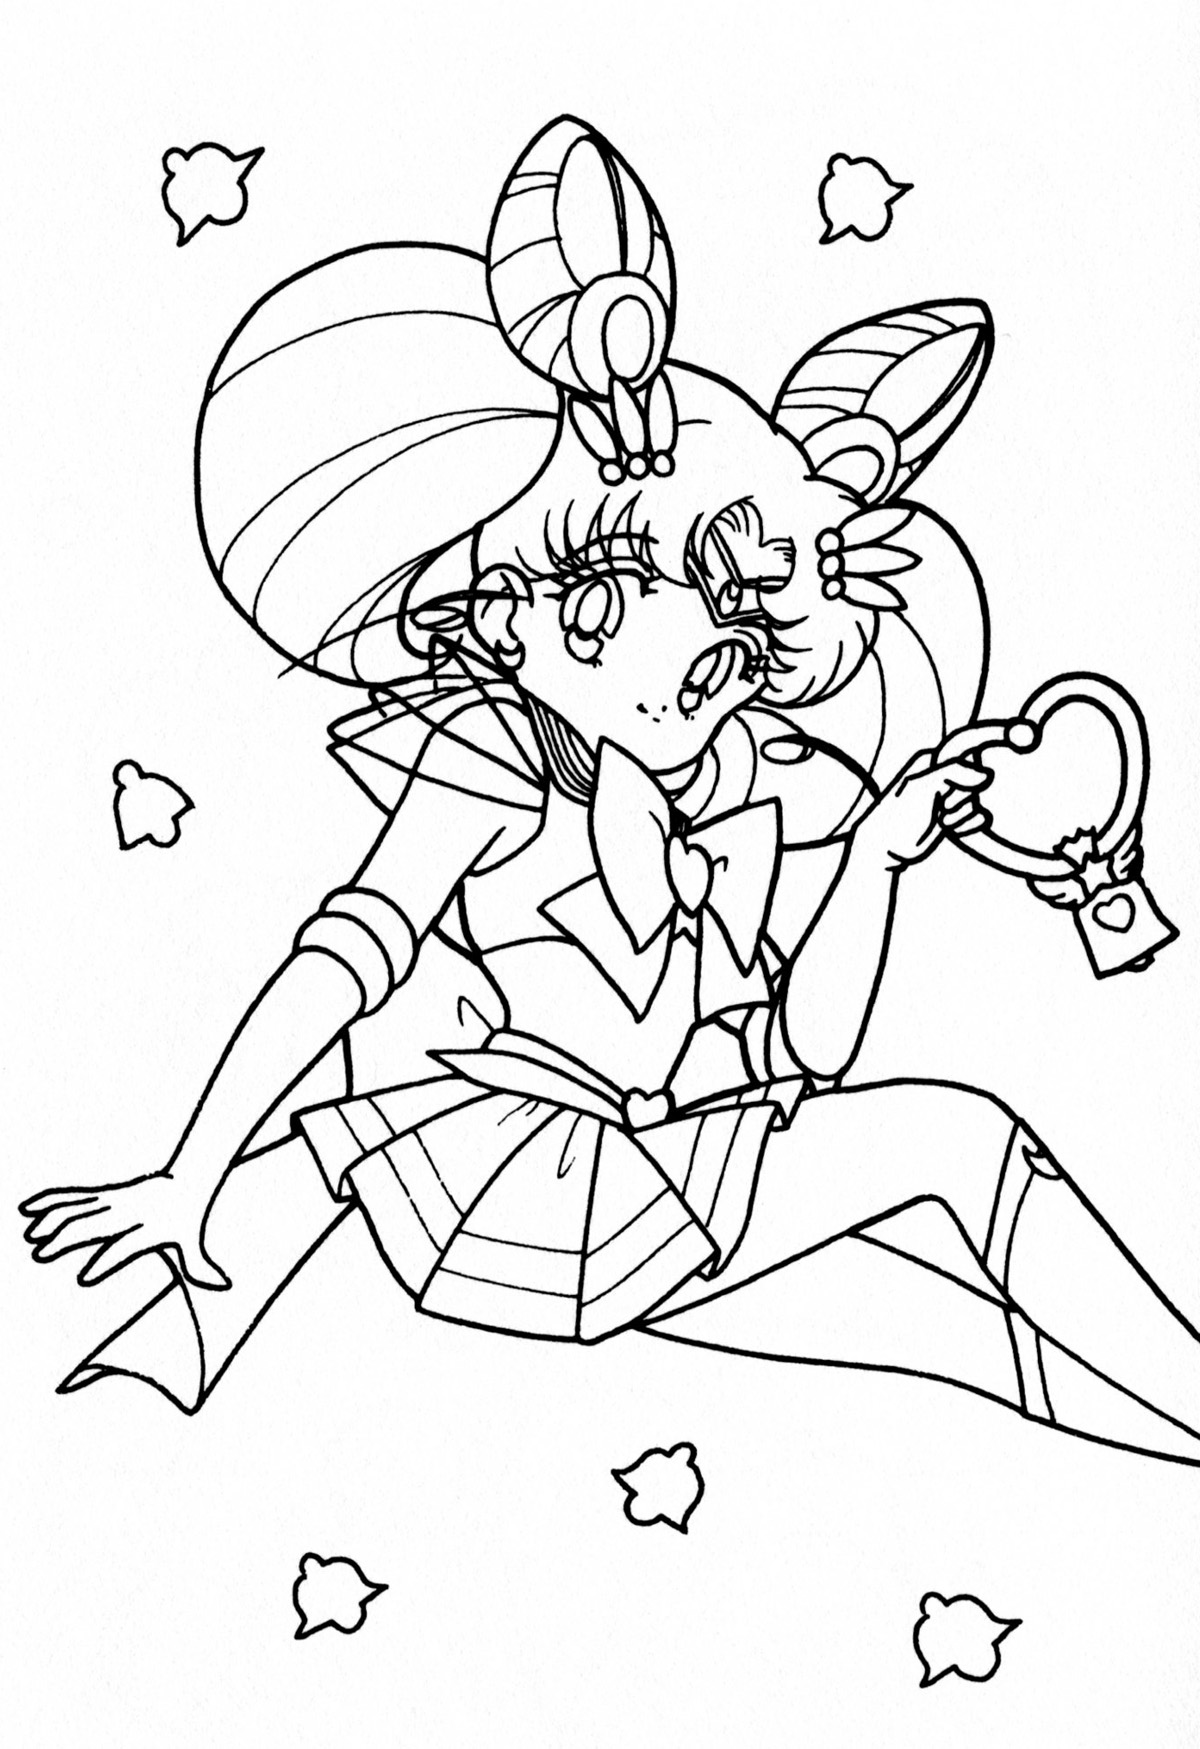 pretty coloring sheets cuties coloring pages to download and print for free sheets pretty coloring